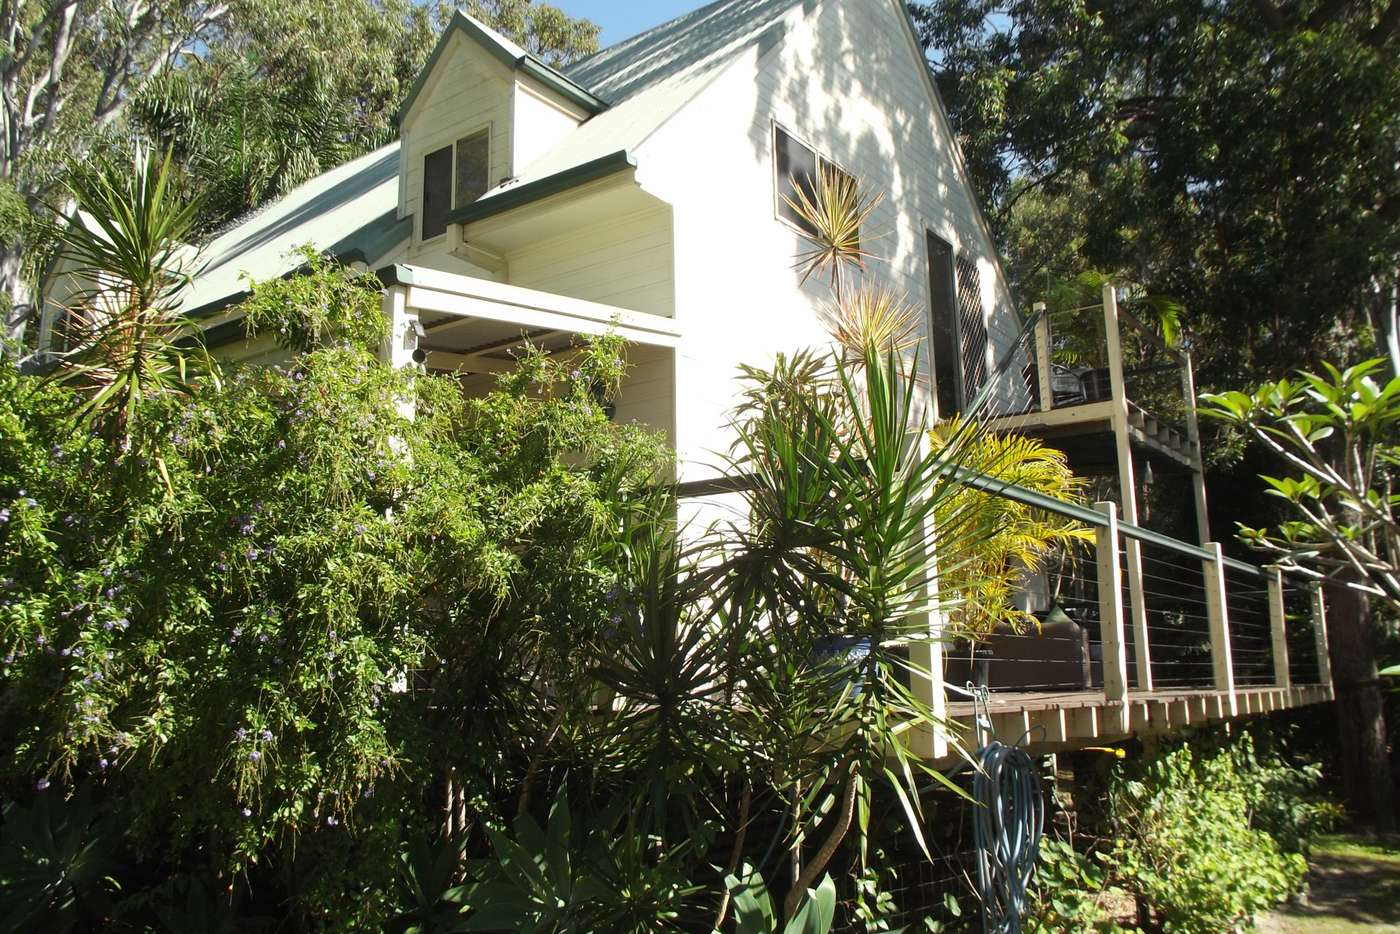 Main view of Homely house listing, 29 Cabriolet Crescent, Macleay Island QLD 4184